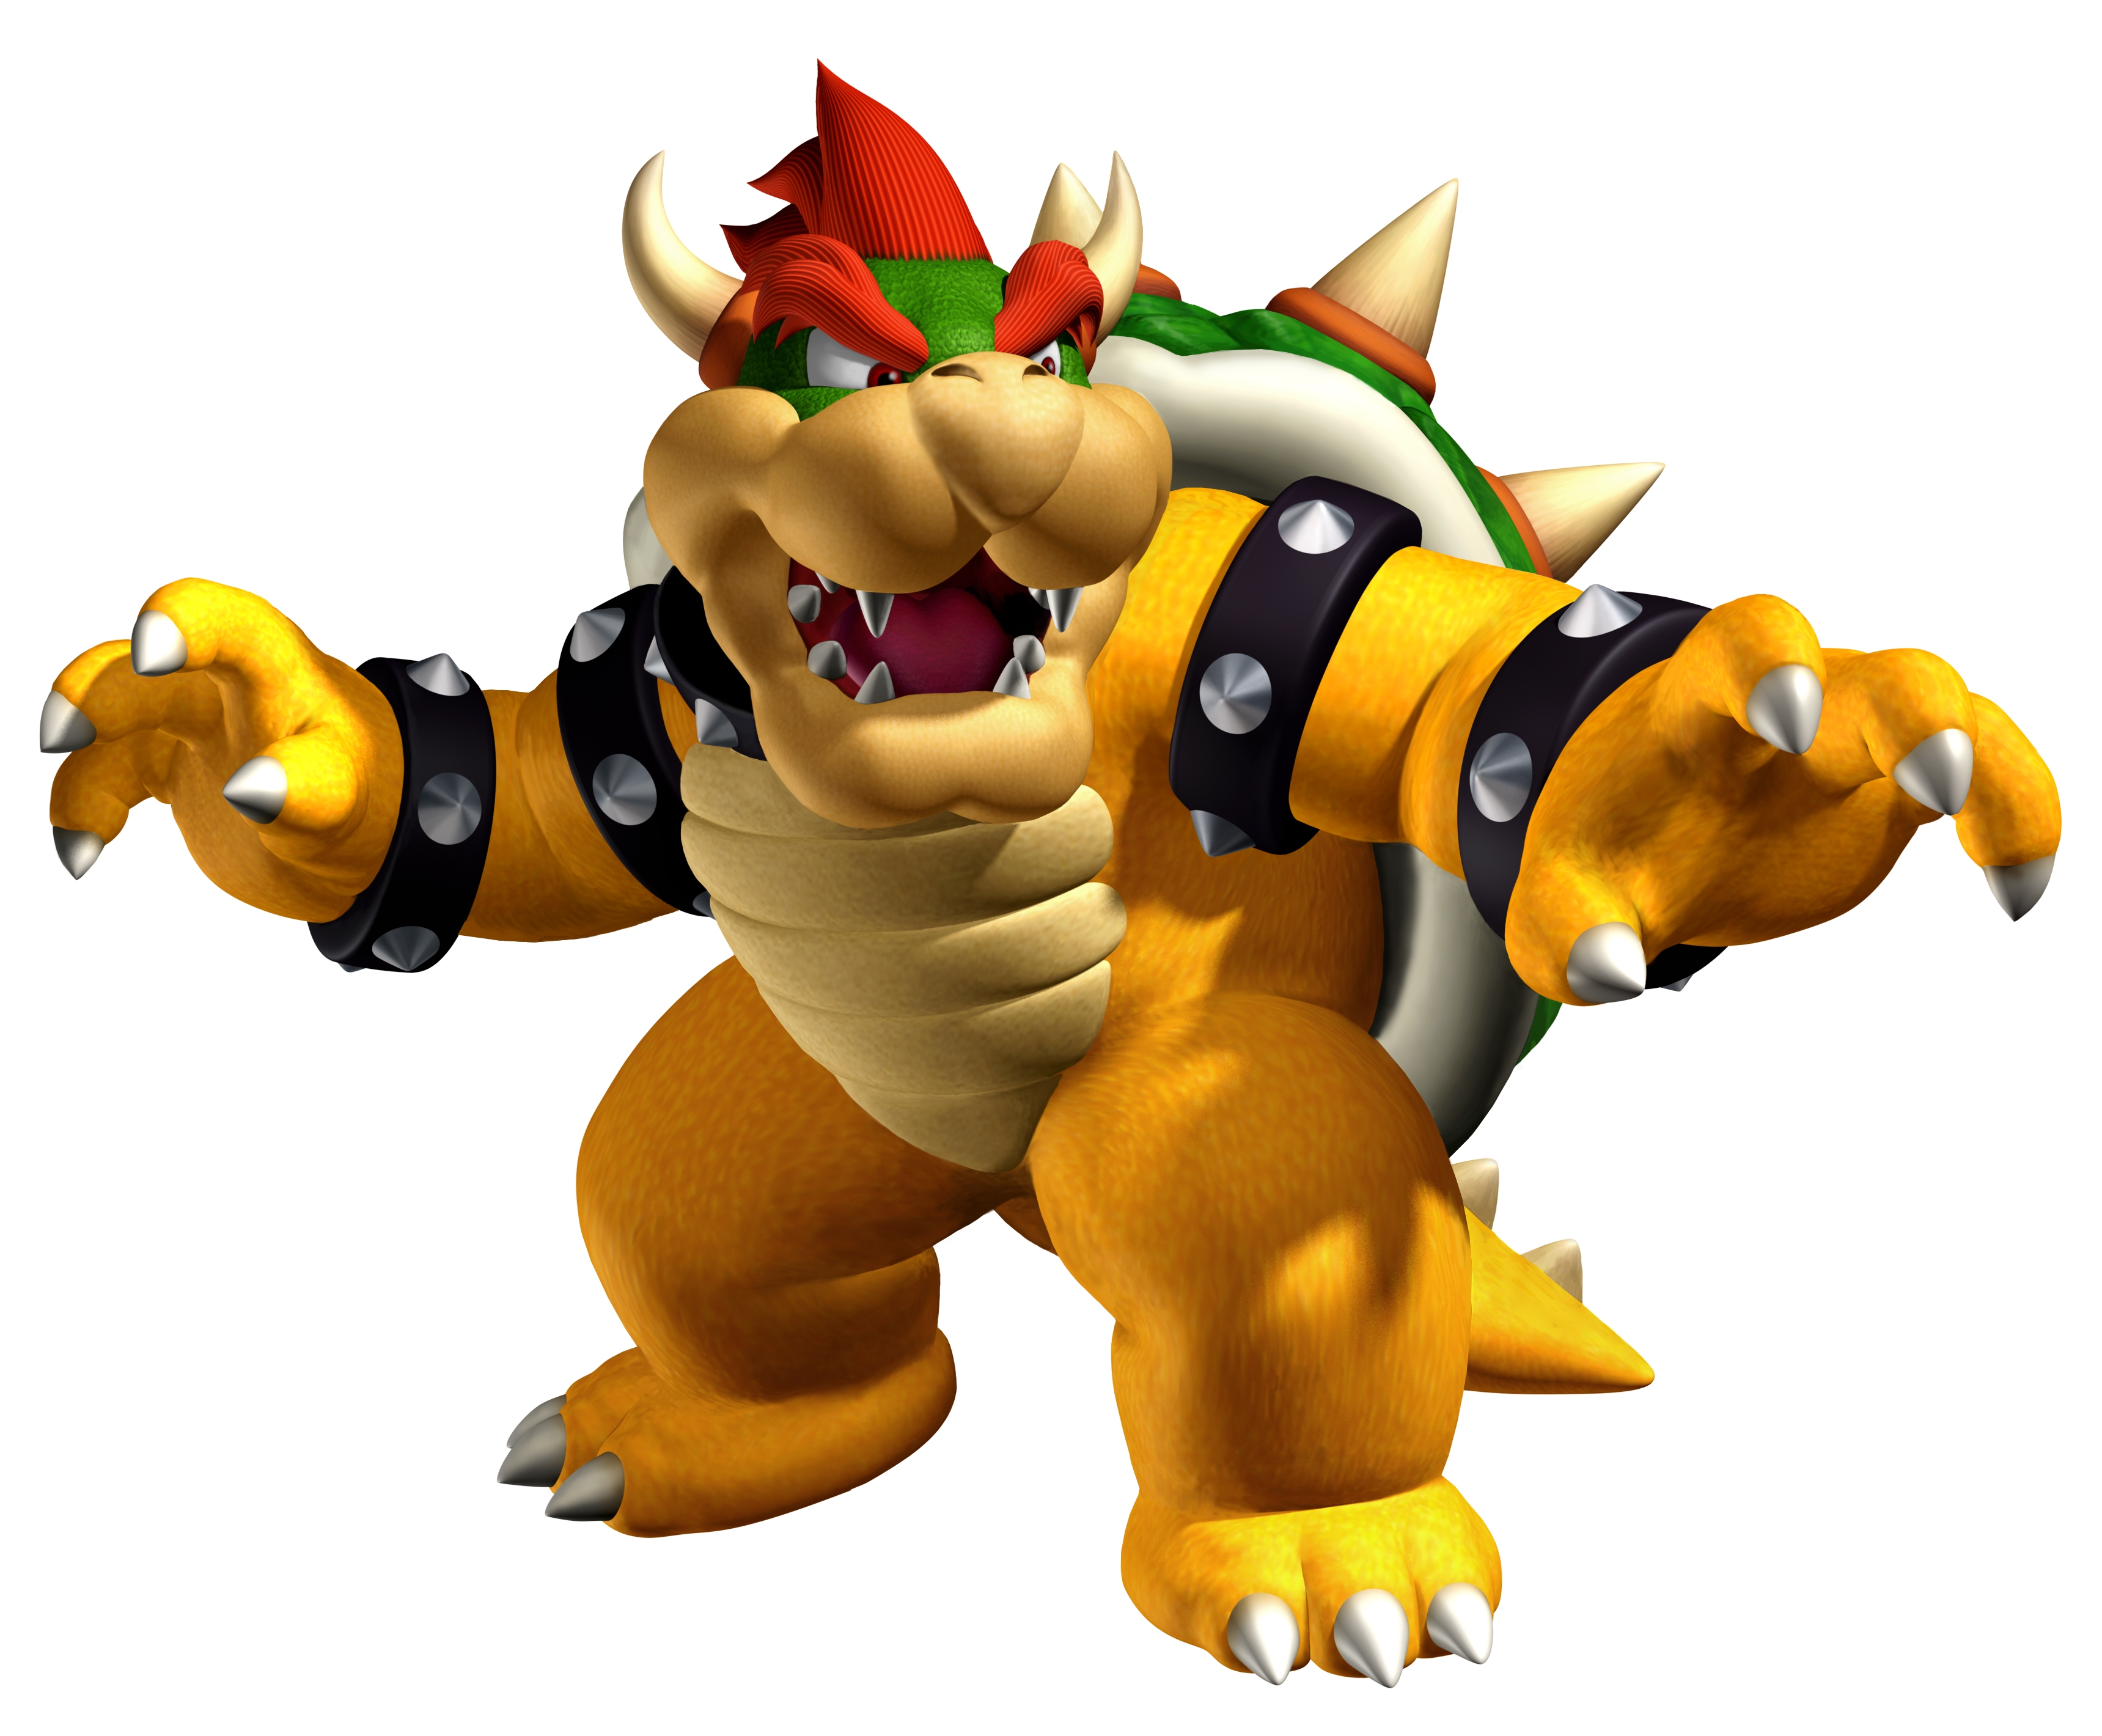 Bowser's Alliance